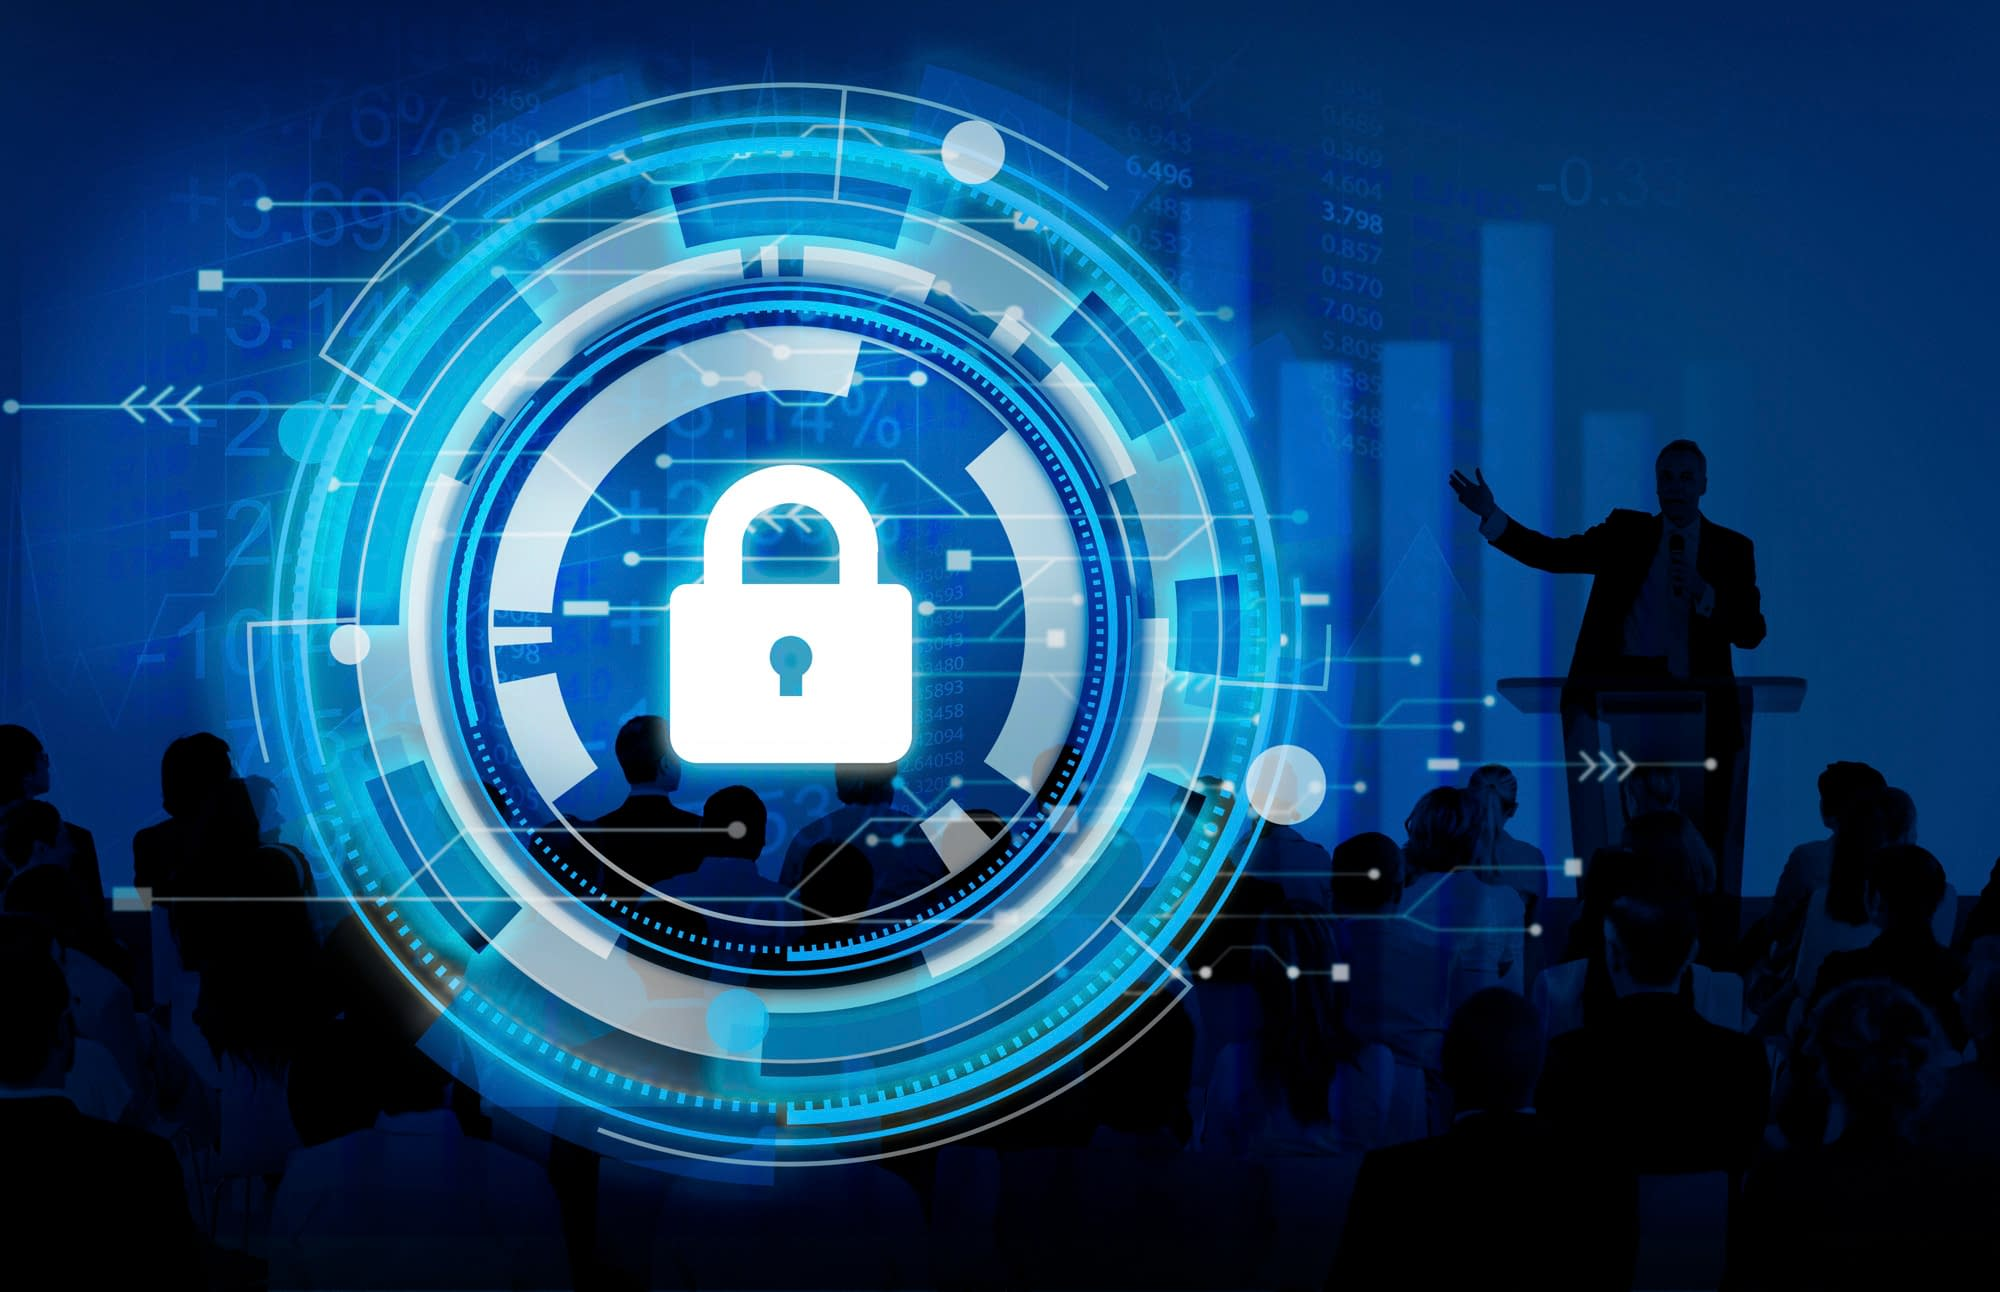 best cyber security company nyc 2021, best cybersecurity companies nyc, best cyber security company new york city 2021